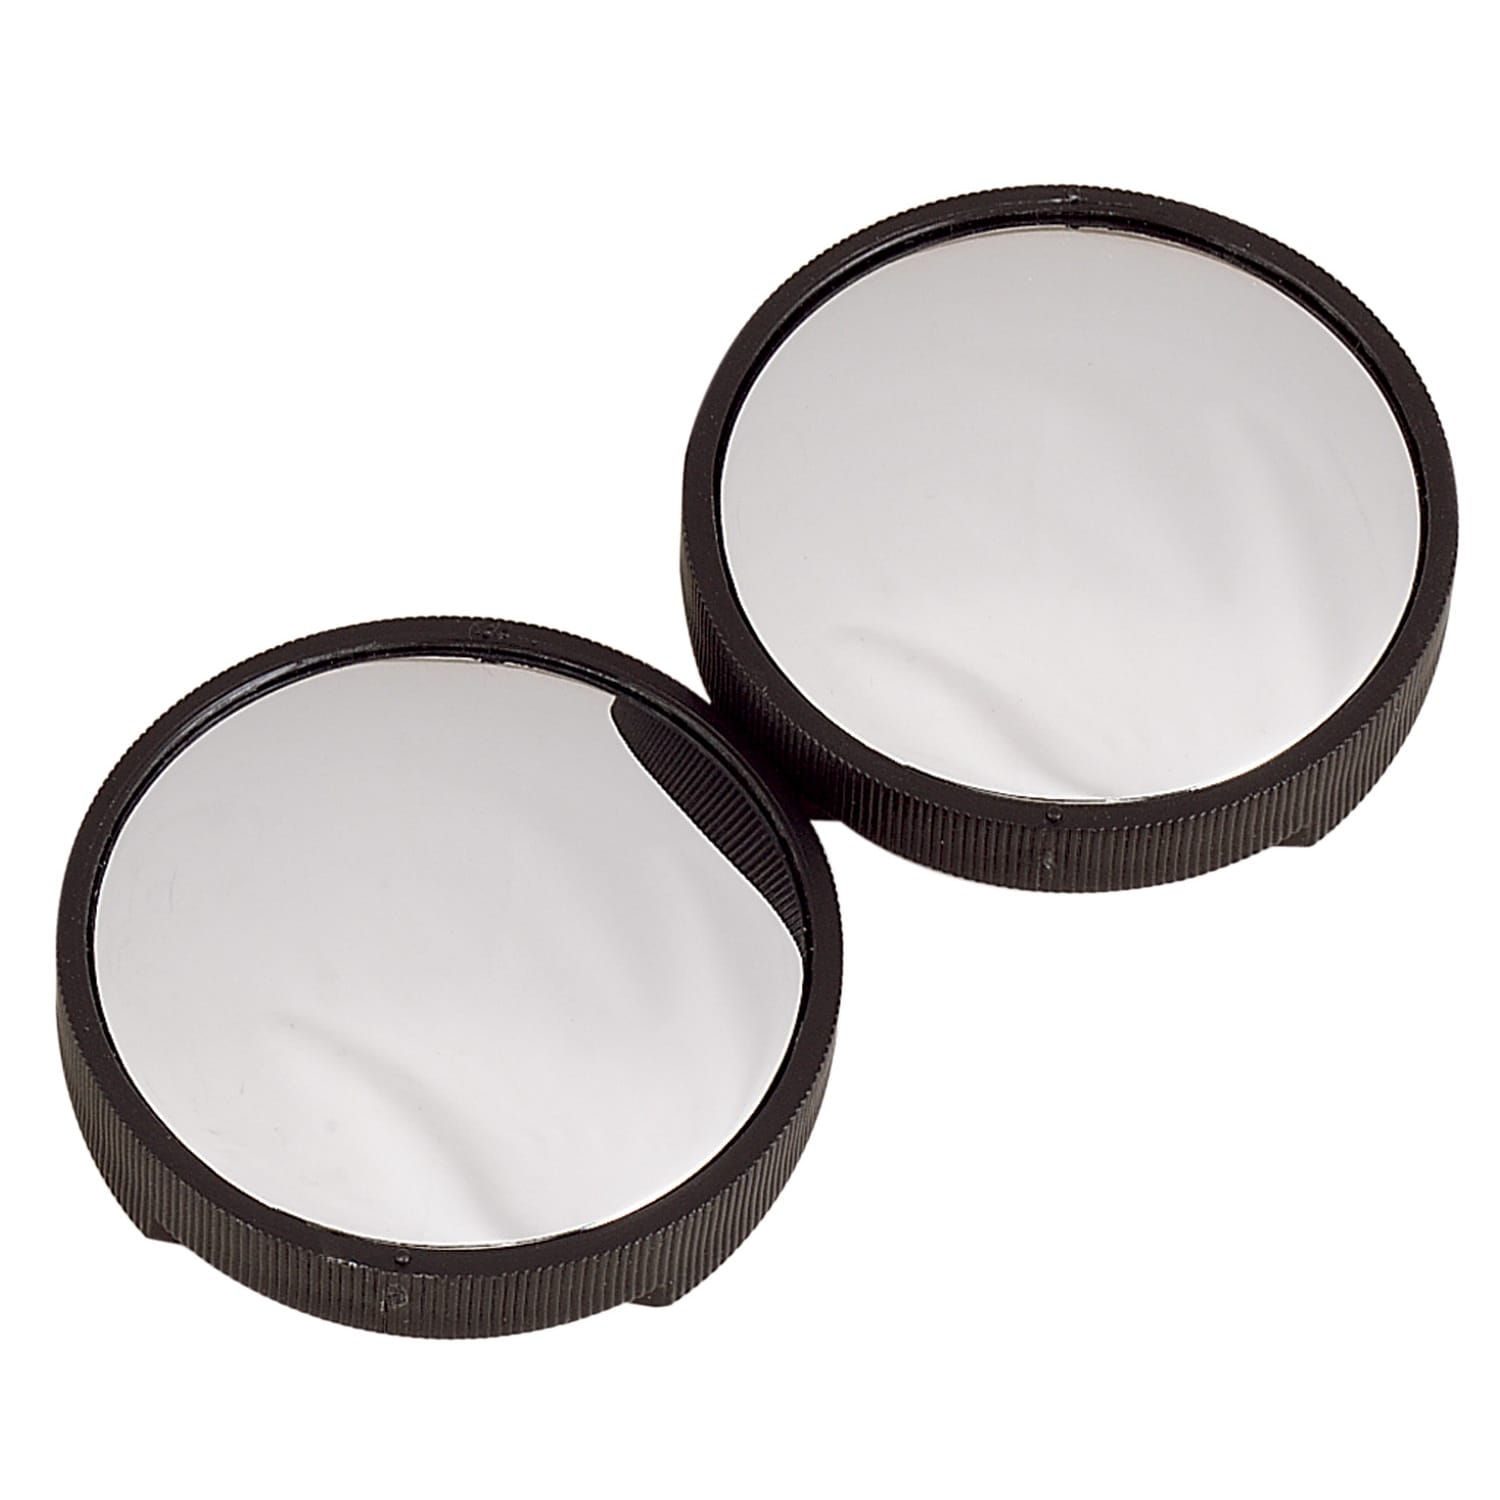 Bell 44806-8 2-count 2-inch Blind Spot Mirror (Exterior a...